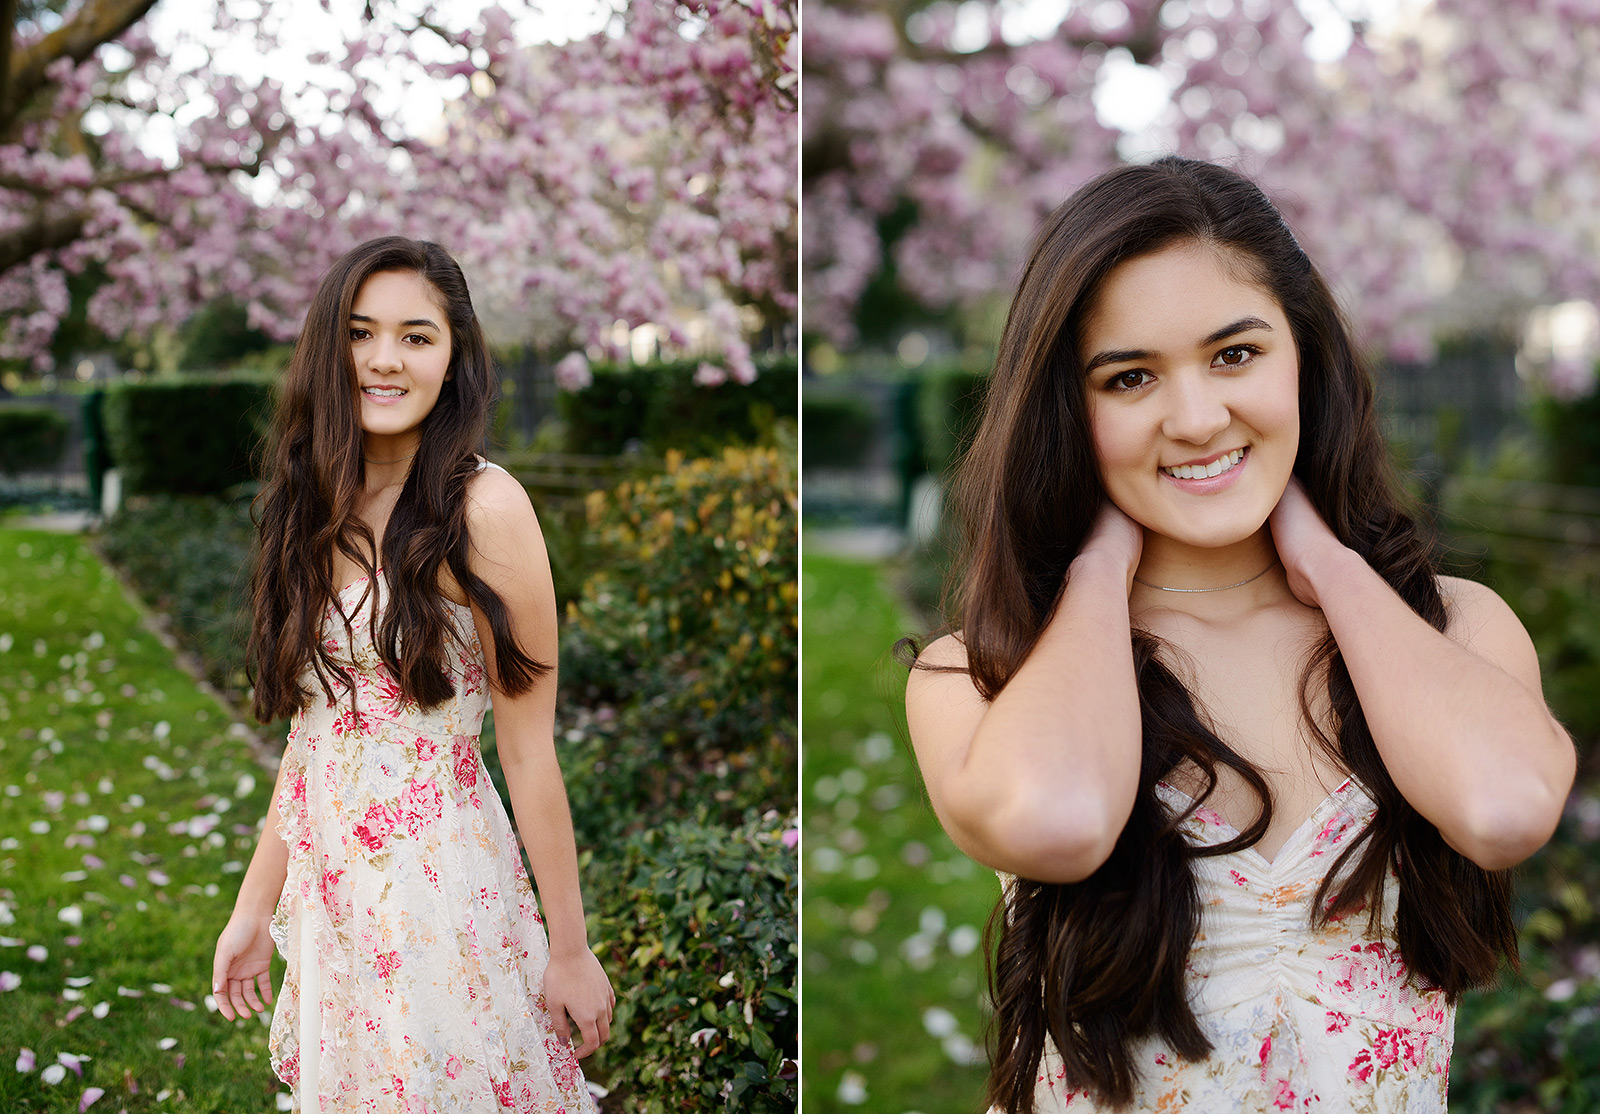 natural poses for spring senior portraits floral magnolia pink tree